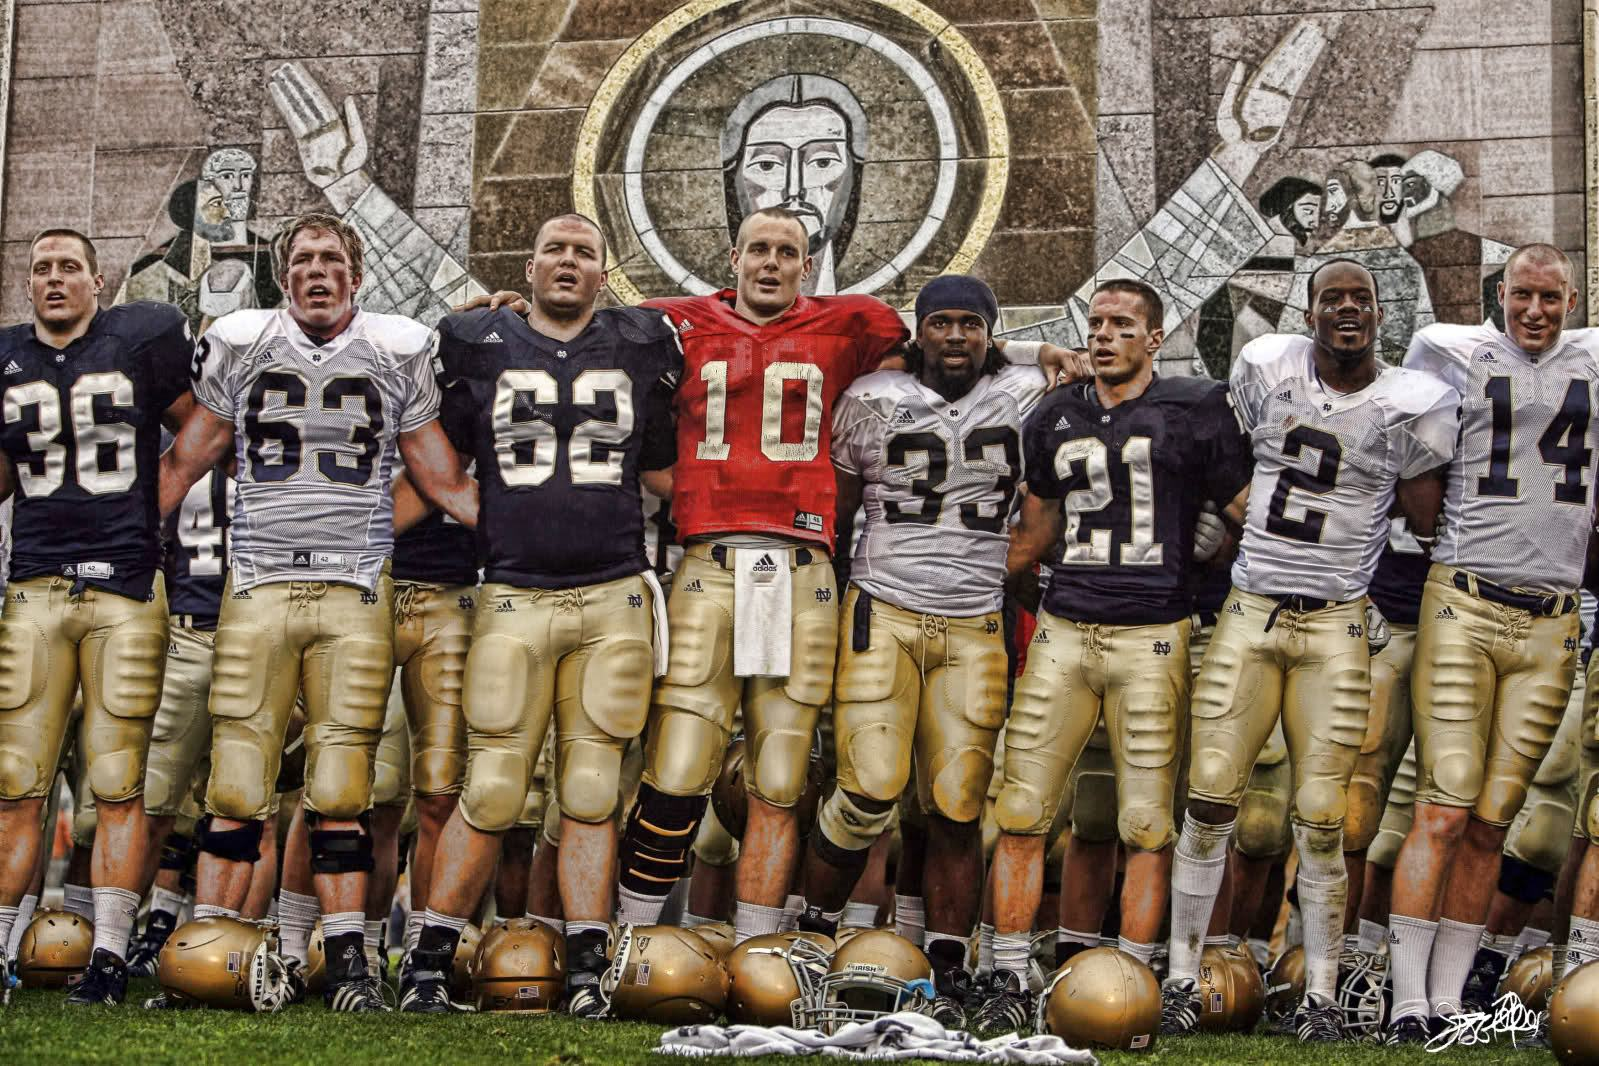 Wallpapers Backgrounds   notre dame football wallpapers 1599x1066